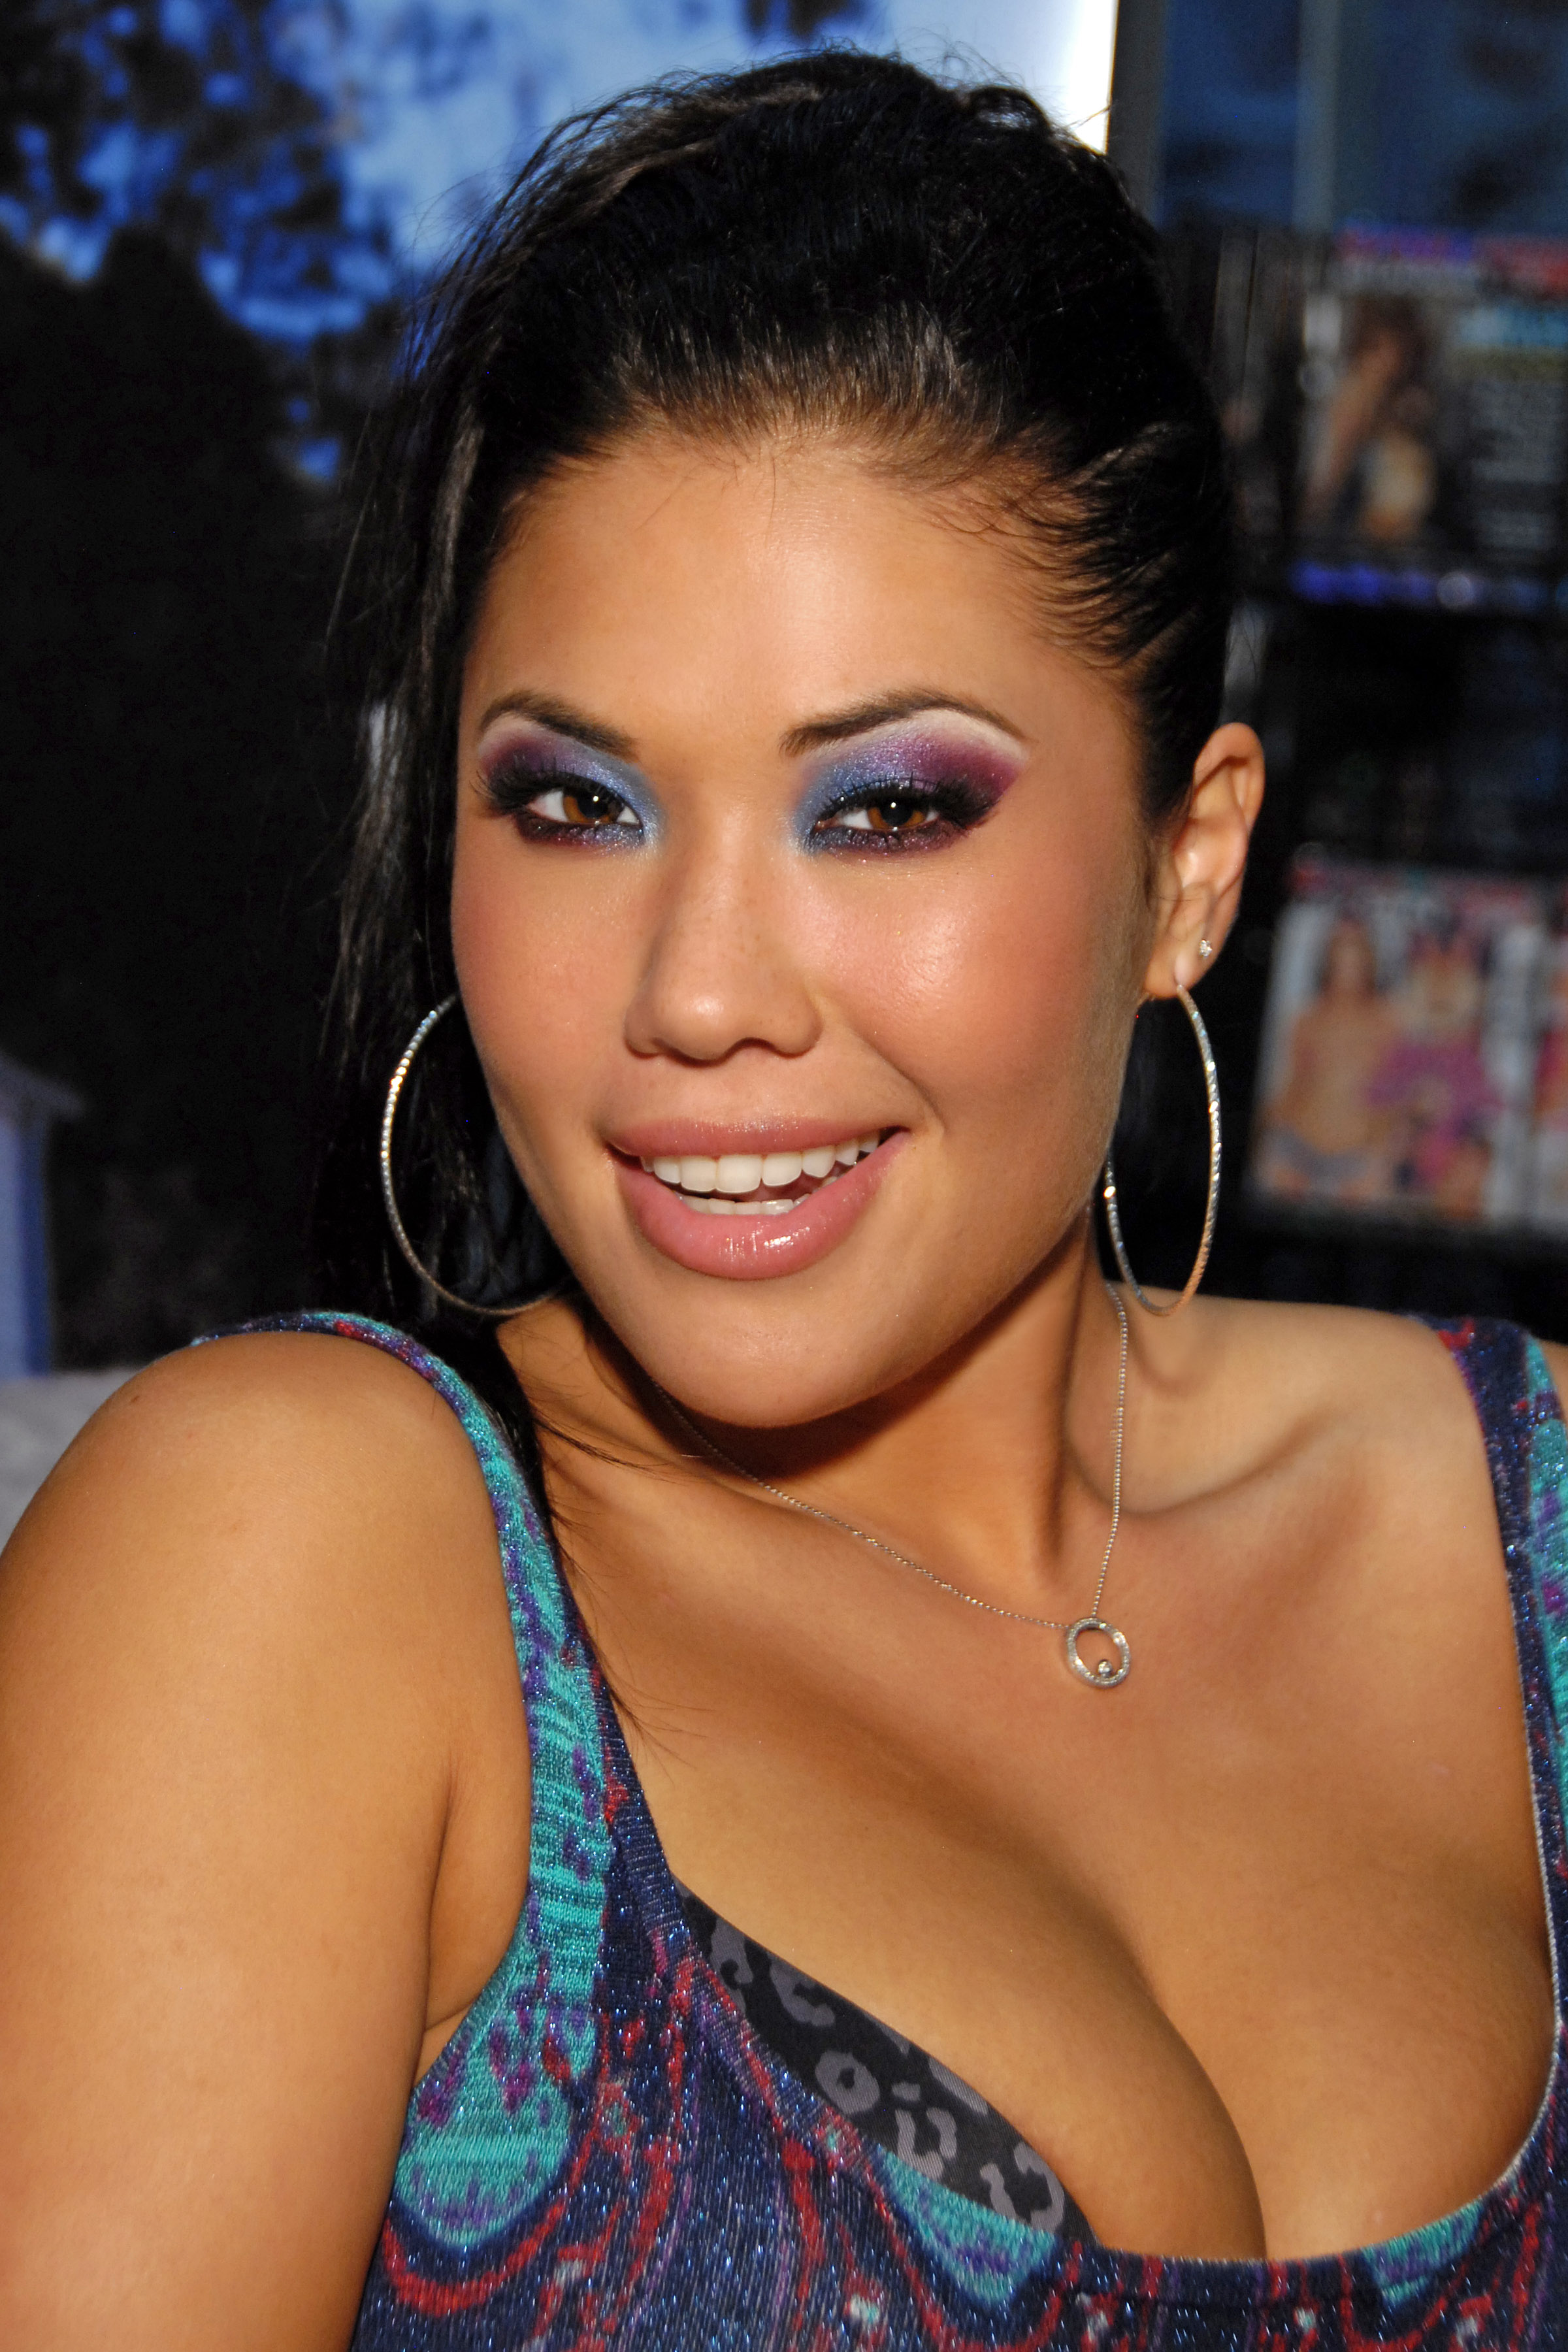 http://upload.wikimedia.org/wikipedia/commons/c/c8/London_Keyes_2011.jpg